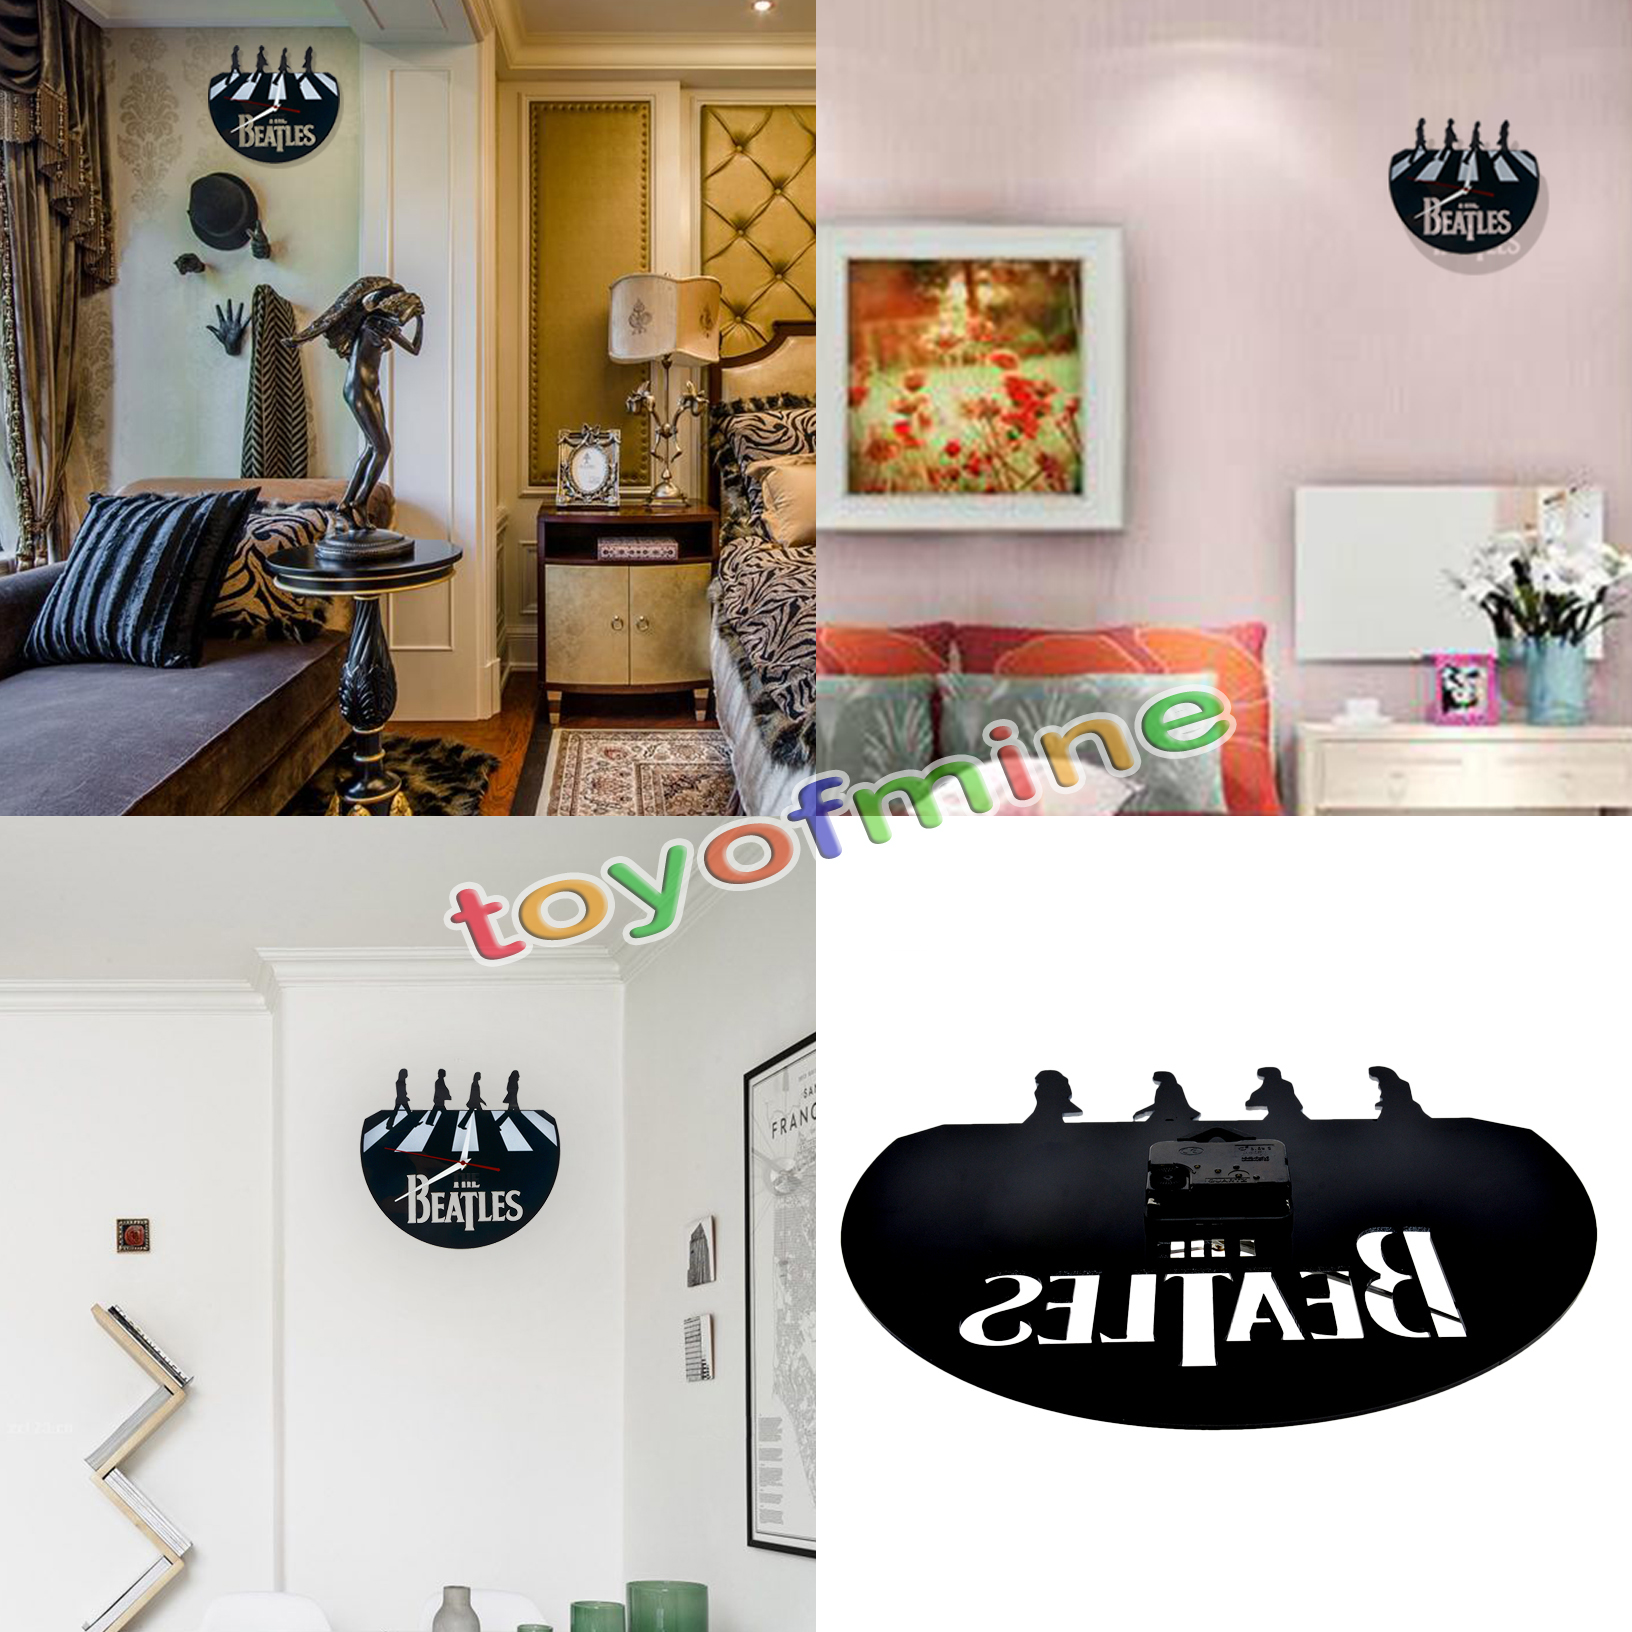 The beatles home decor watch vinyl wall art clock family for Handmade decorative items for bedroom